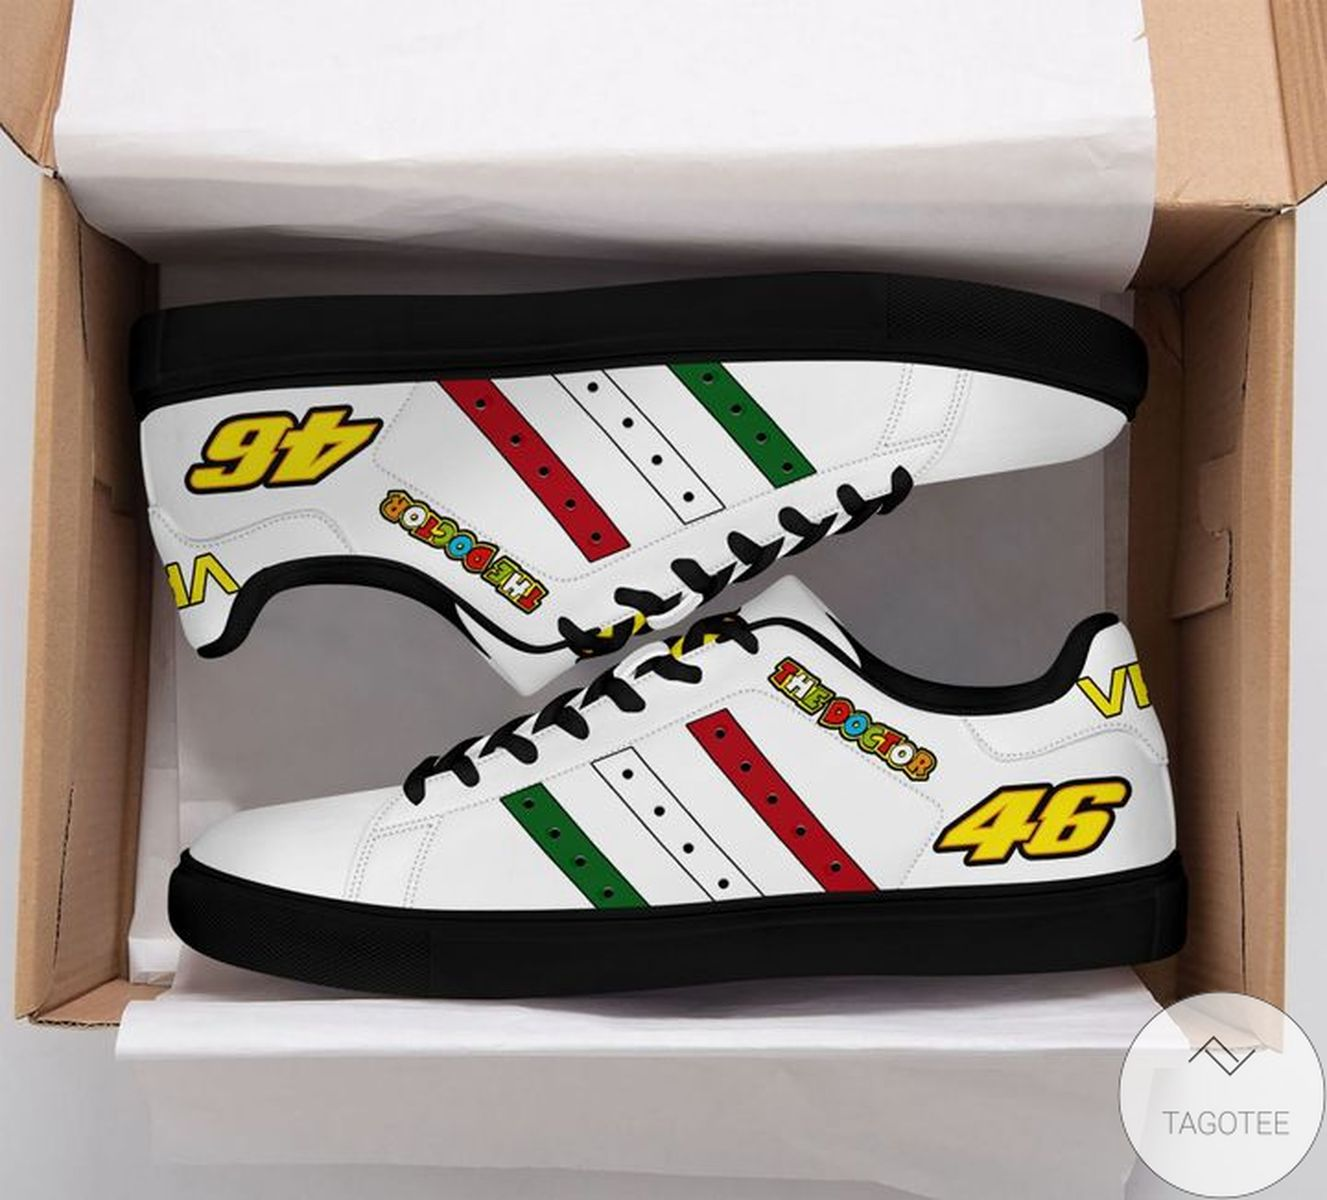 Print On Demand The Doctor Vr46 White Stan Smith Shoes